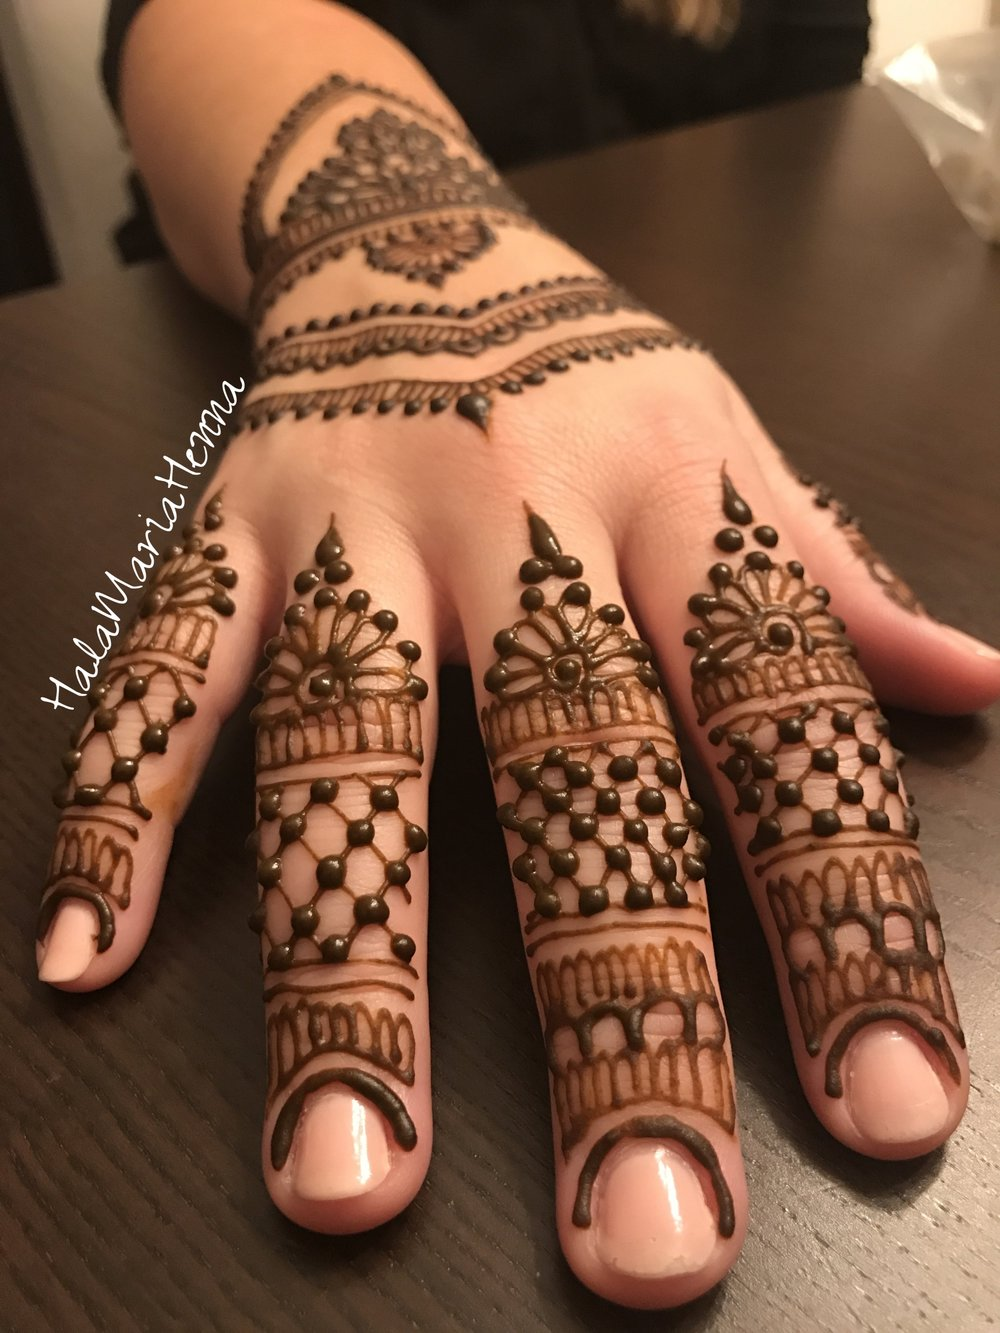 09+Hala+Maria+Henna+Mehndi+Simple+Bridal+Wedding+Sangeet+Grid+Dots+Floral+Designs